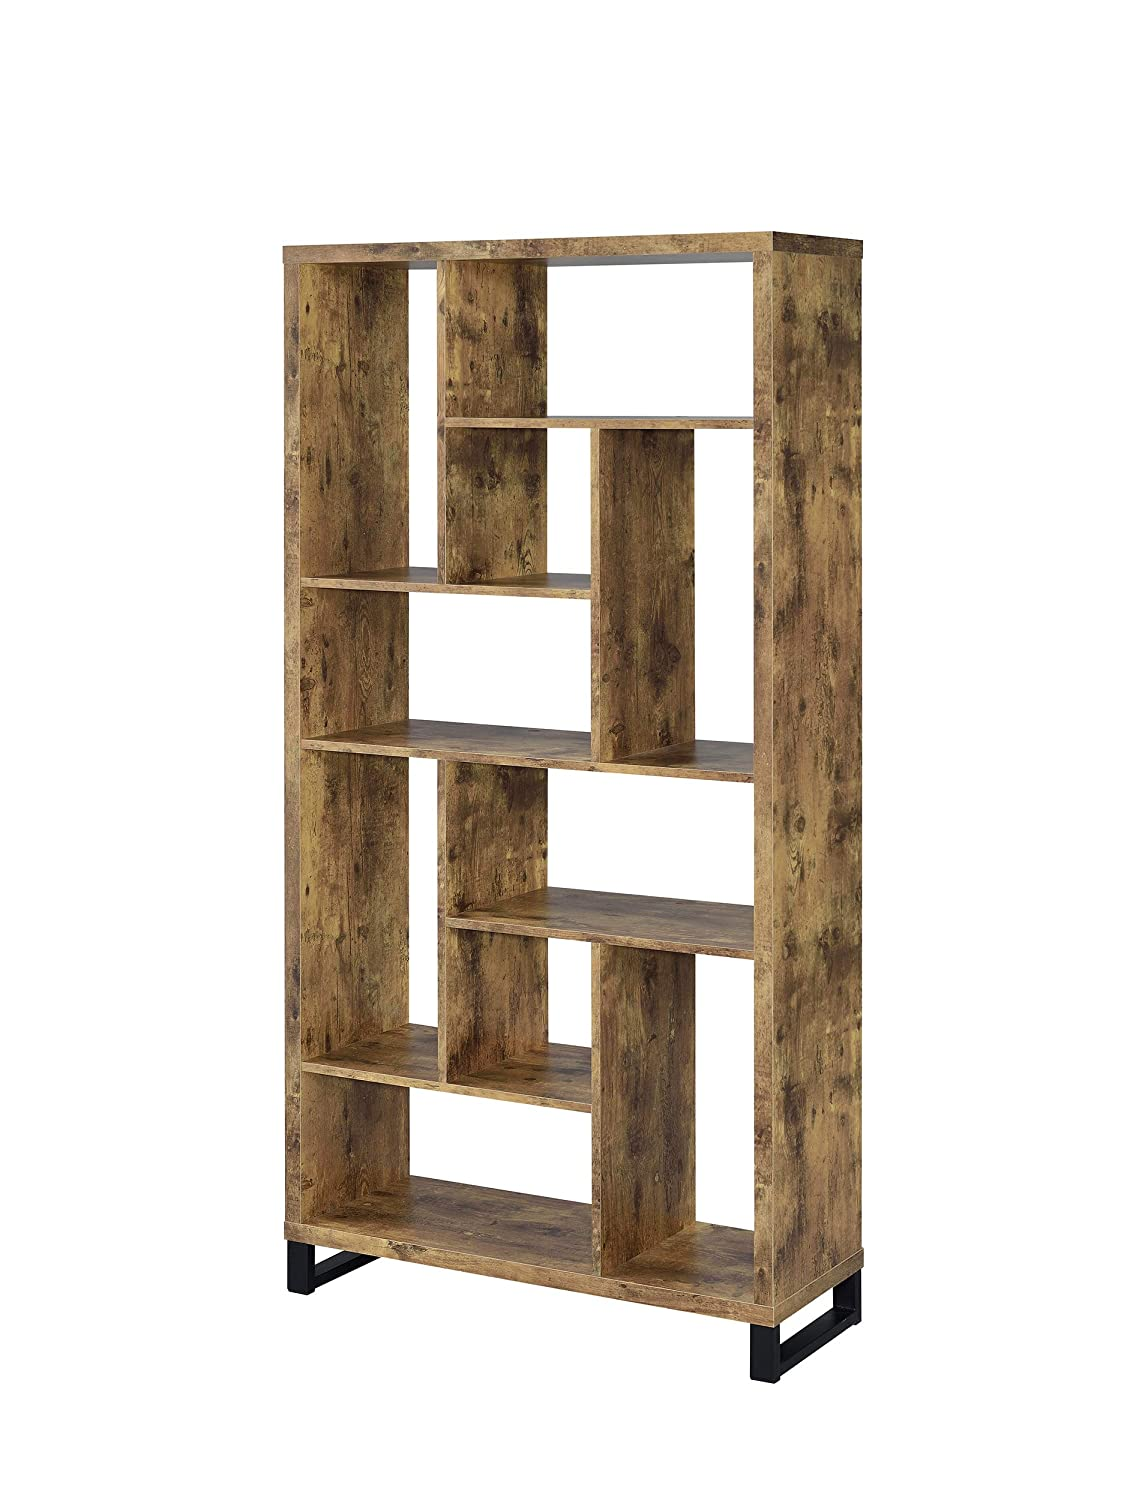 Coaster Home Furnishings 801236 Industrial Rustic Antique Circuit Scribe Conductive Ink Basic Kit Electroninks Cskitbasic Nutmeg Open Bookcase With Different Sized Cubbies